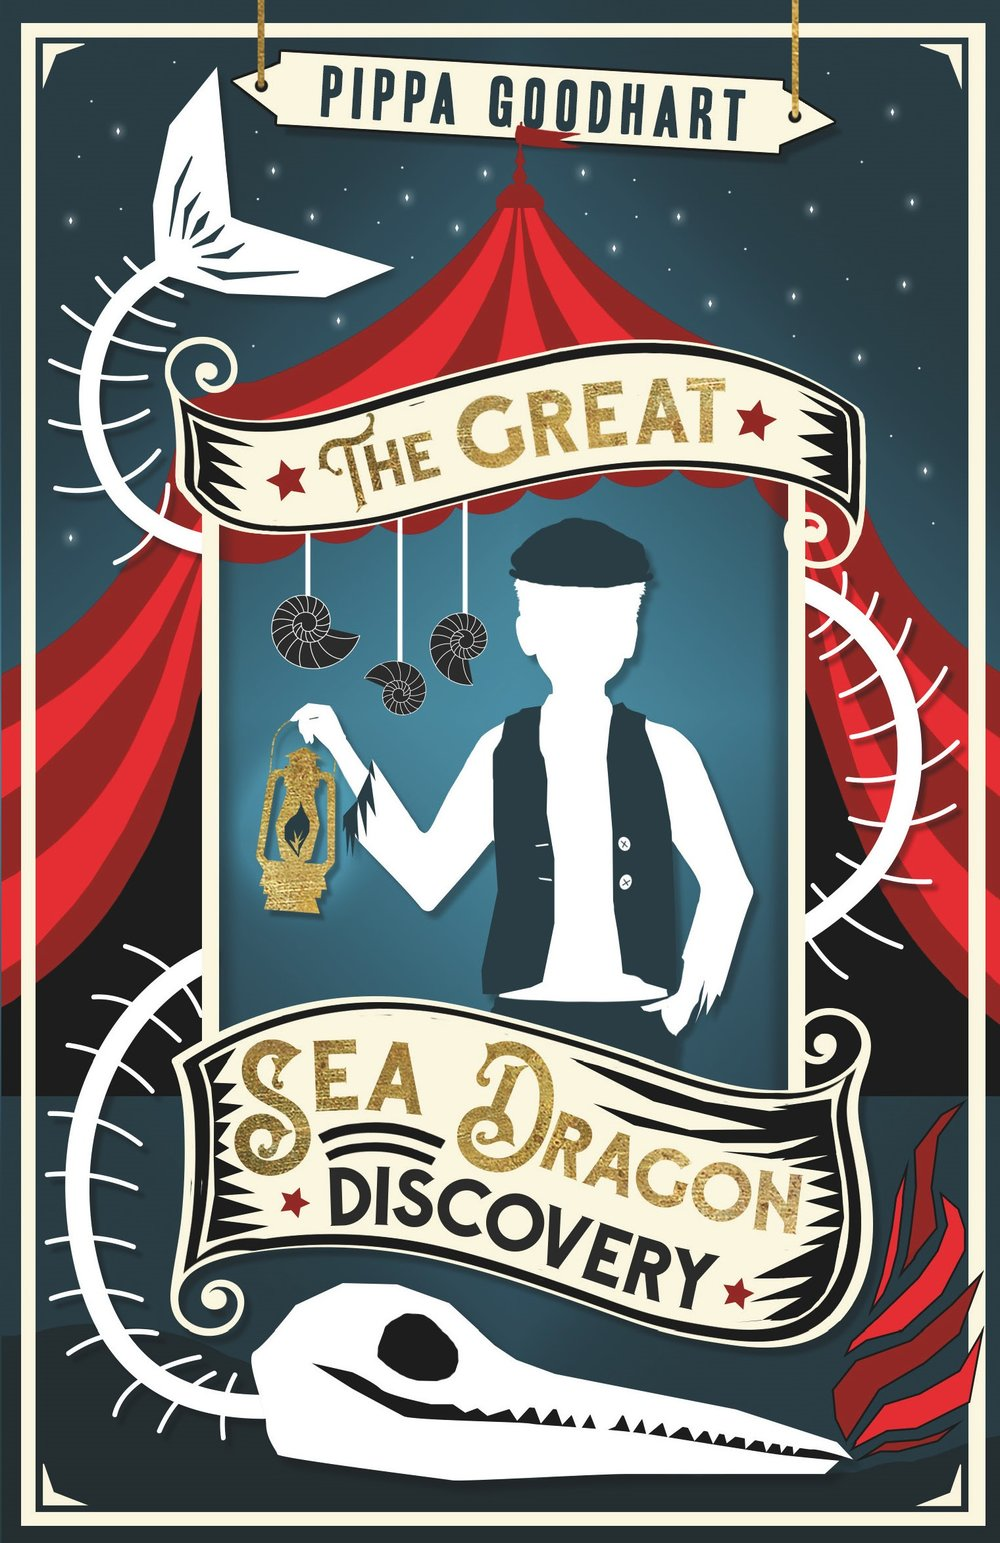 THE GREAT SEA DRAGON DISCOVERY FULL COVER LH FINAL_Page_1.jpg